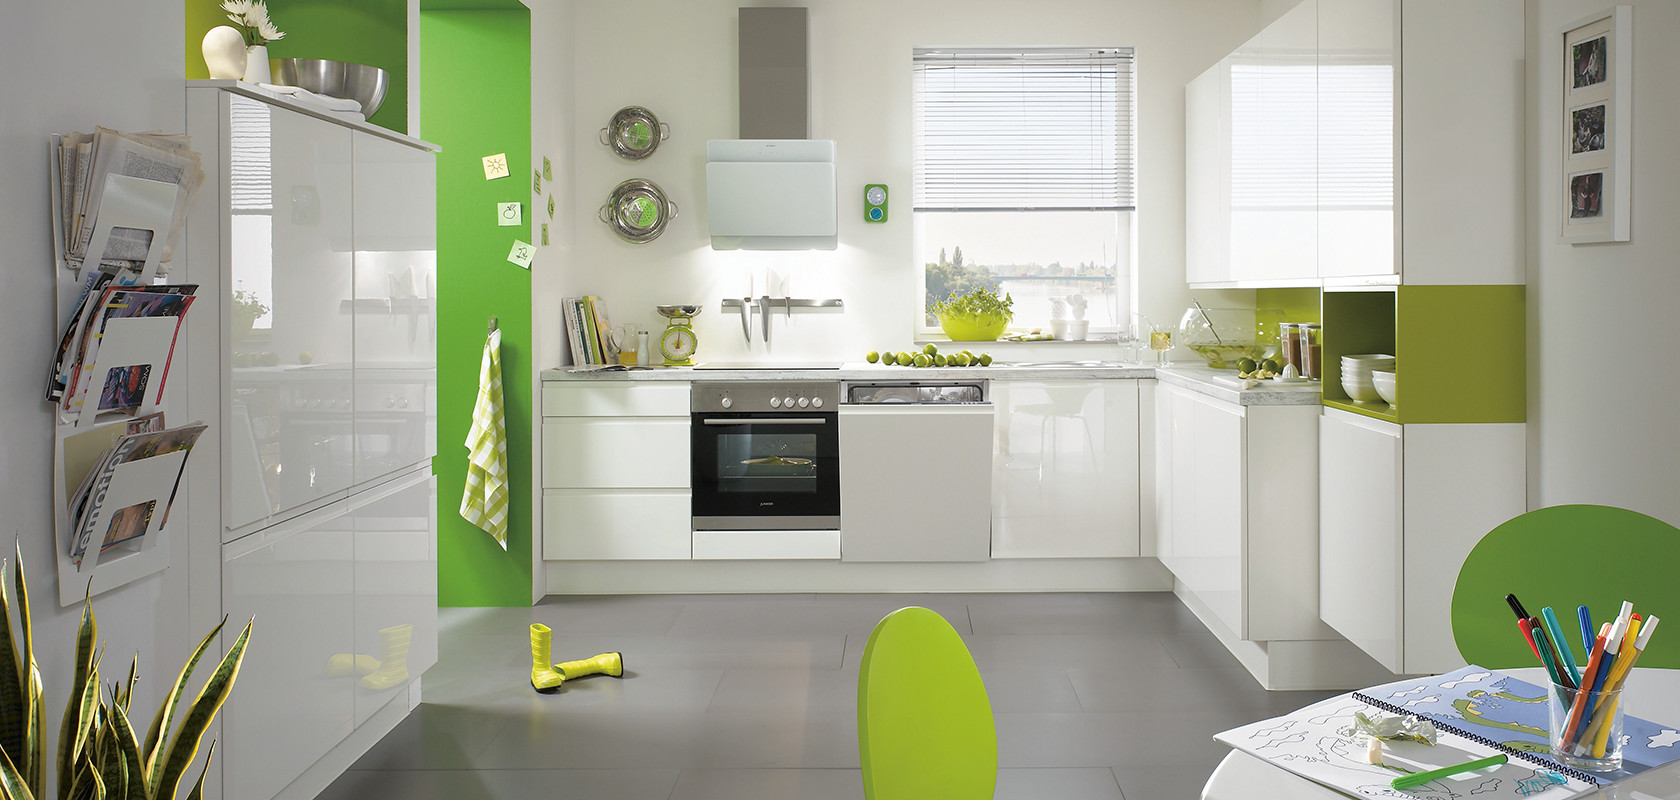 German Made Kitchens | Bespoke Kitchen | Lemon and Lime Interiors